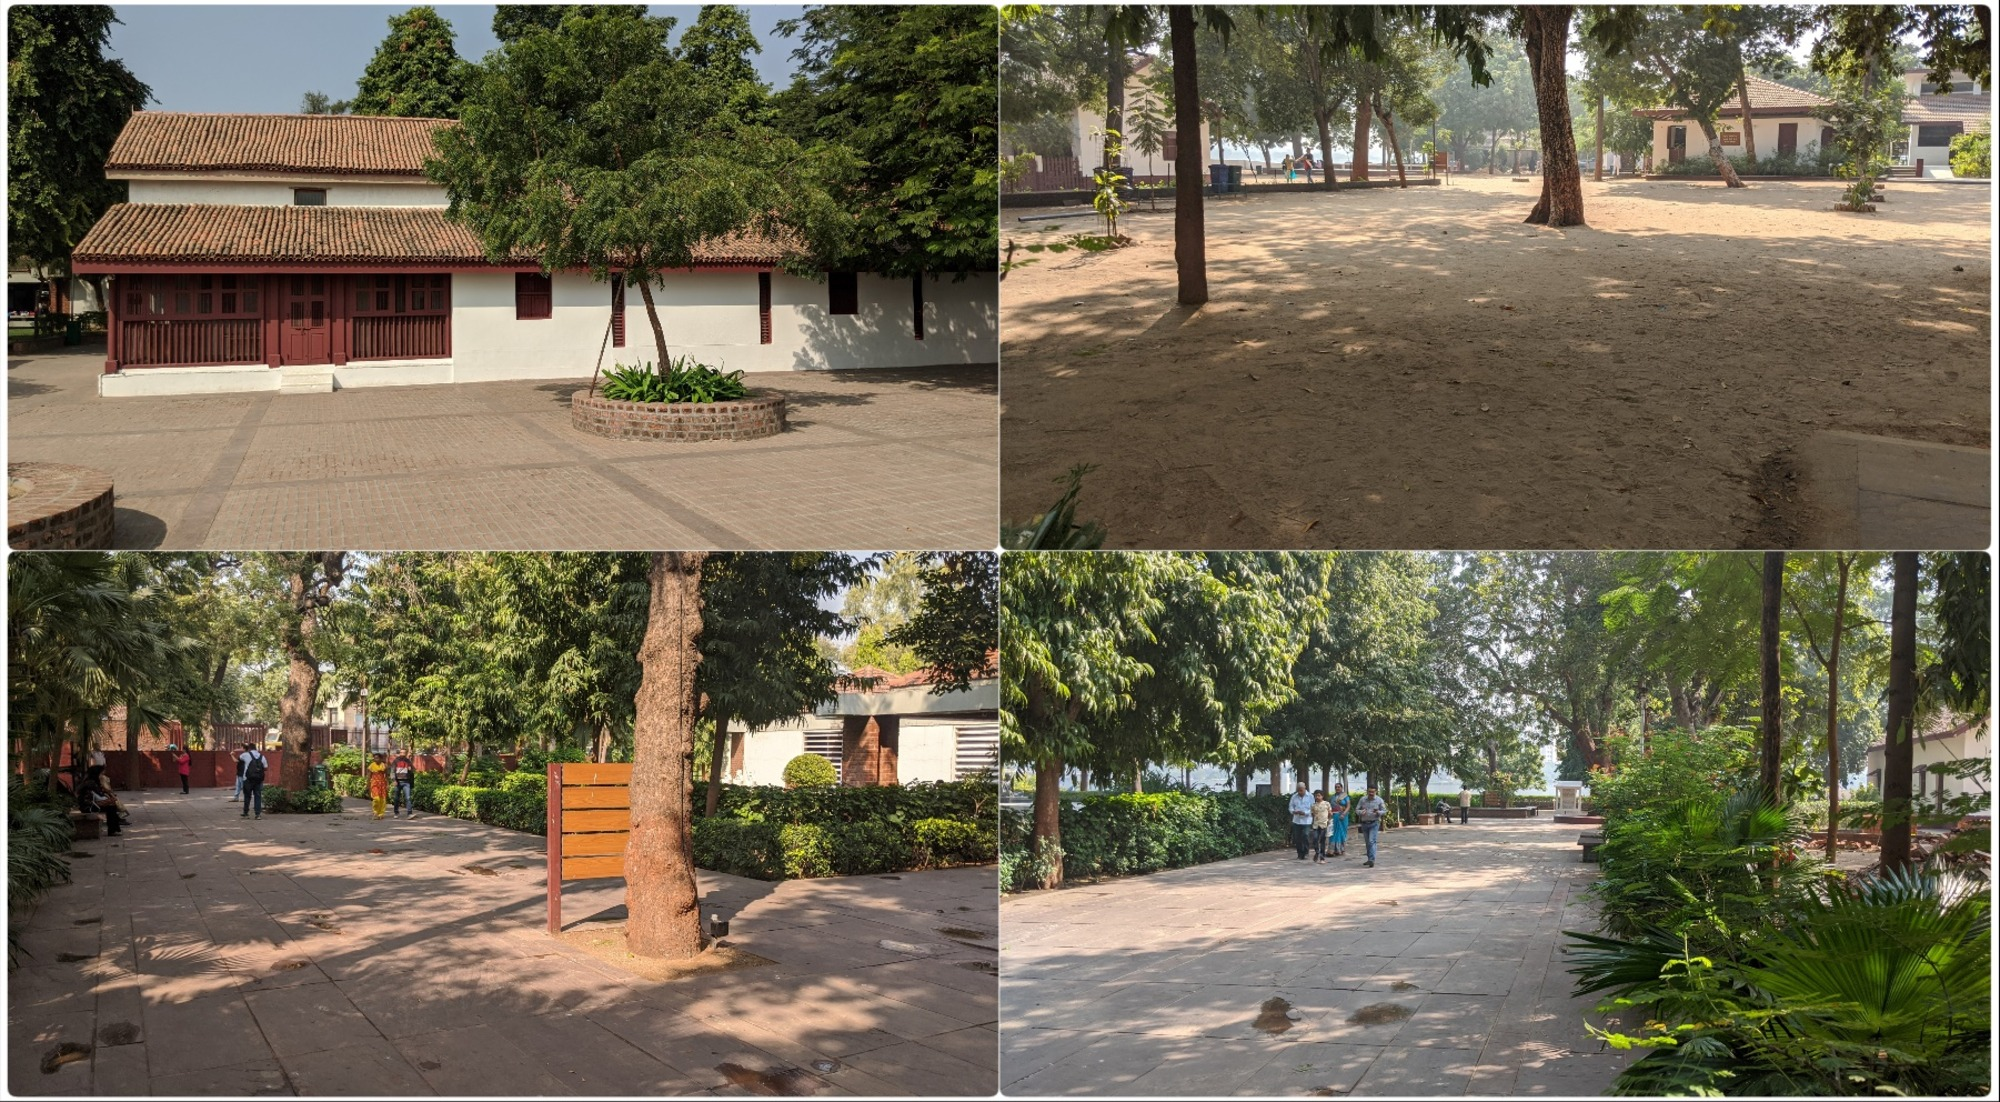 Cottages and pathways in Sabarmati Ashram